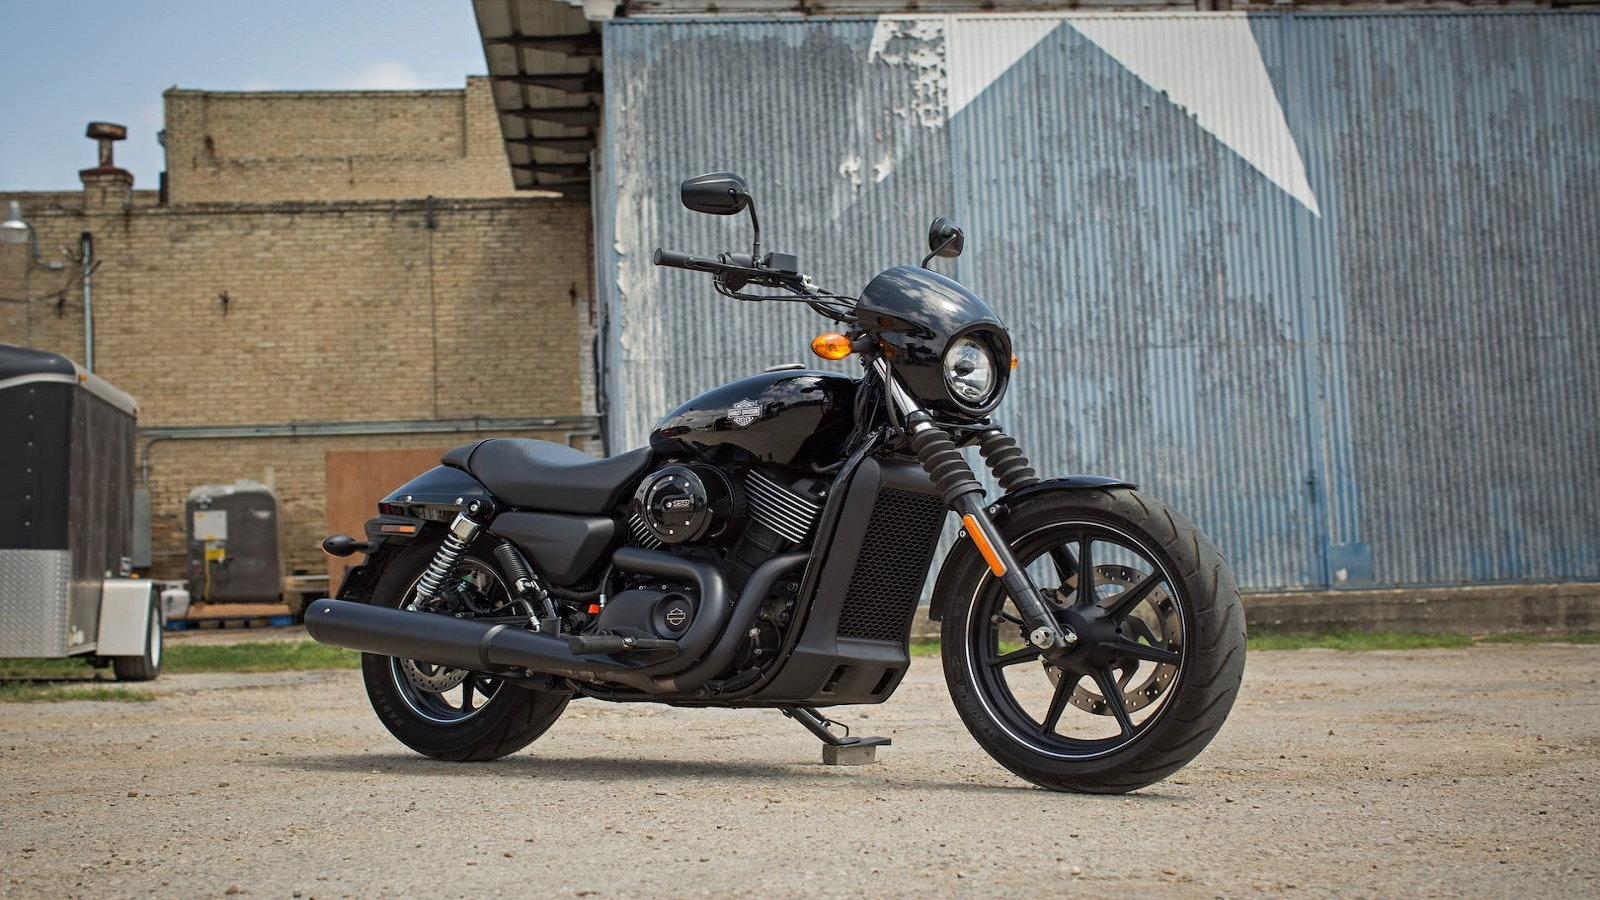 The Real Reason Harley-Davidson is Closing Plants In the U.S.